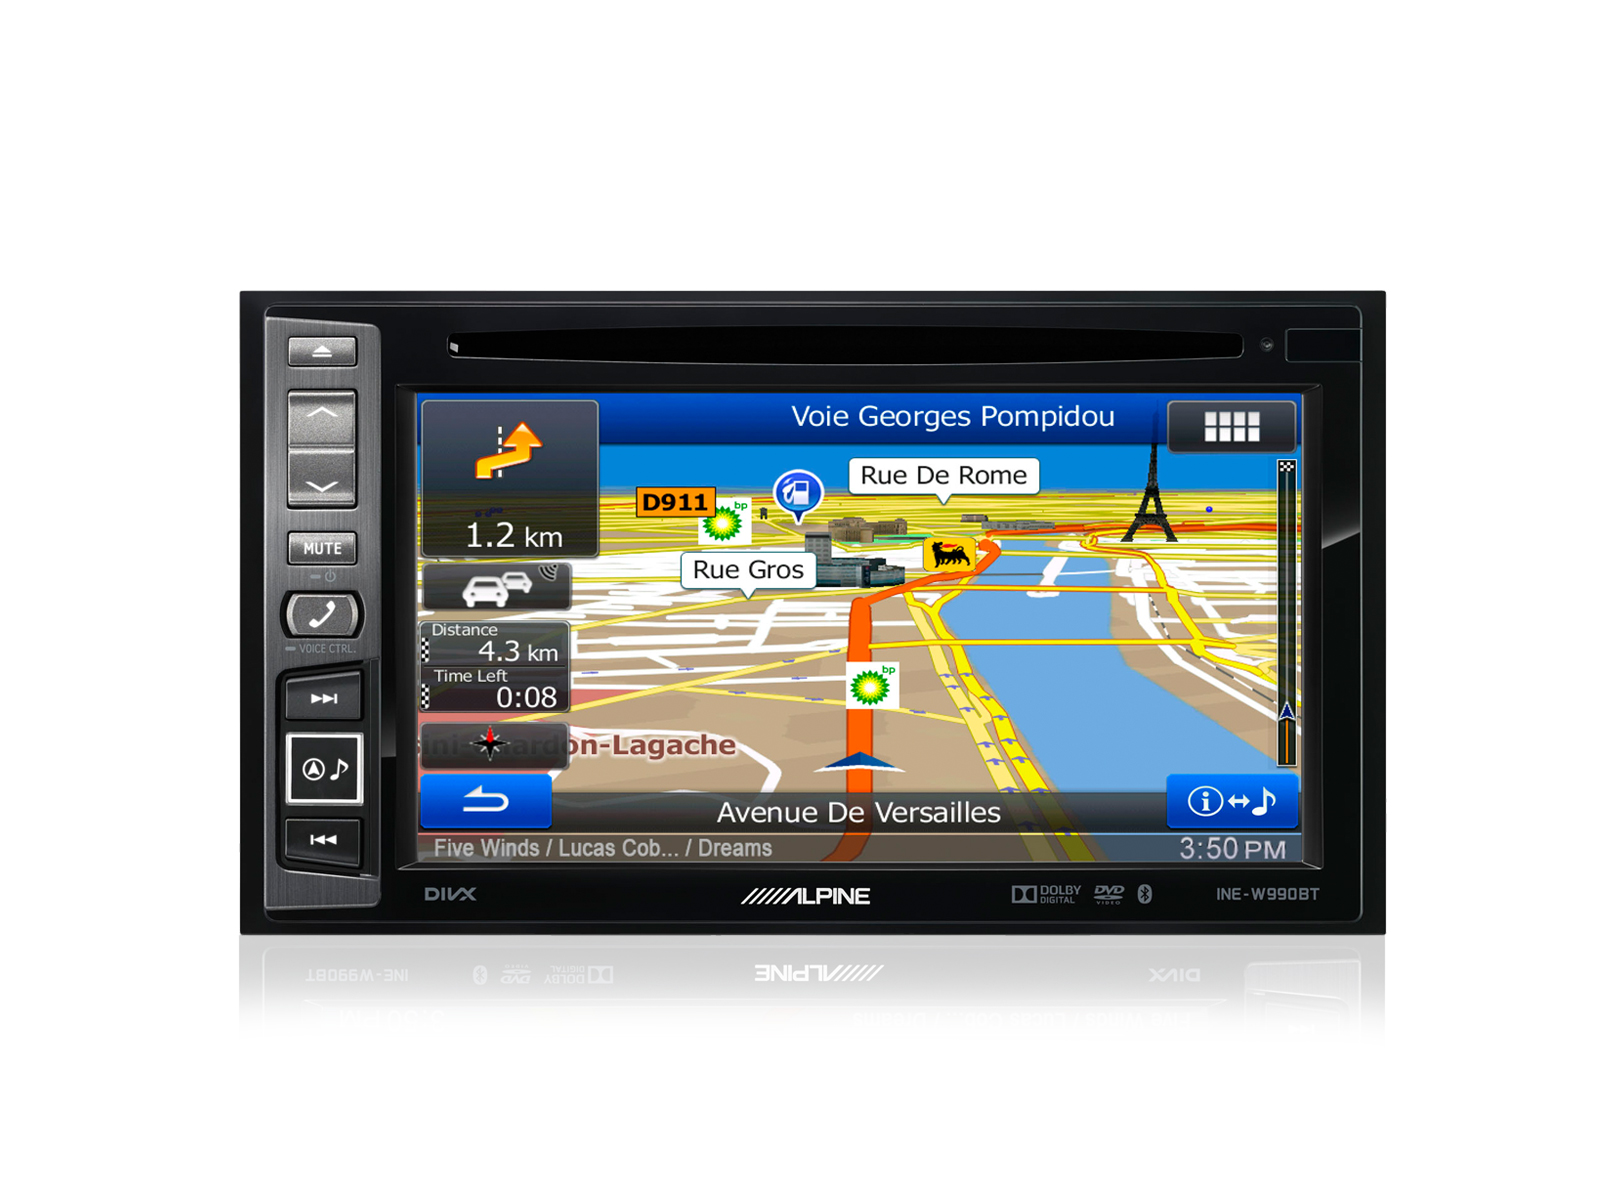 alpine navigationsger t autoradio ine w990hdmi usb. Black Bedroom Furniture Sets. Home Design Ideas